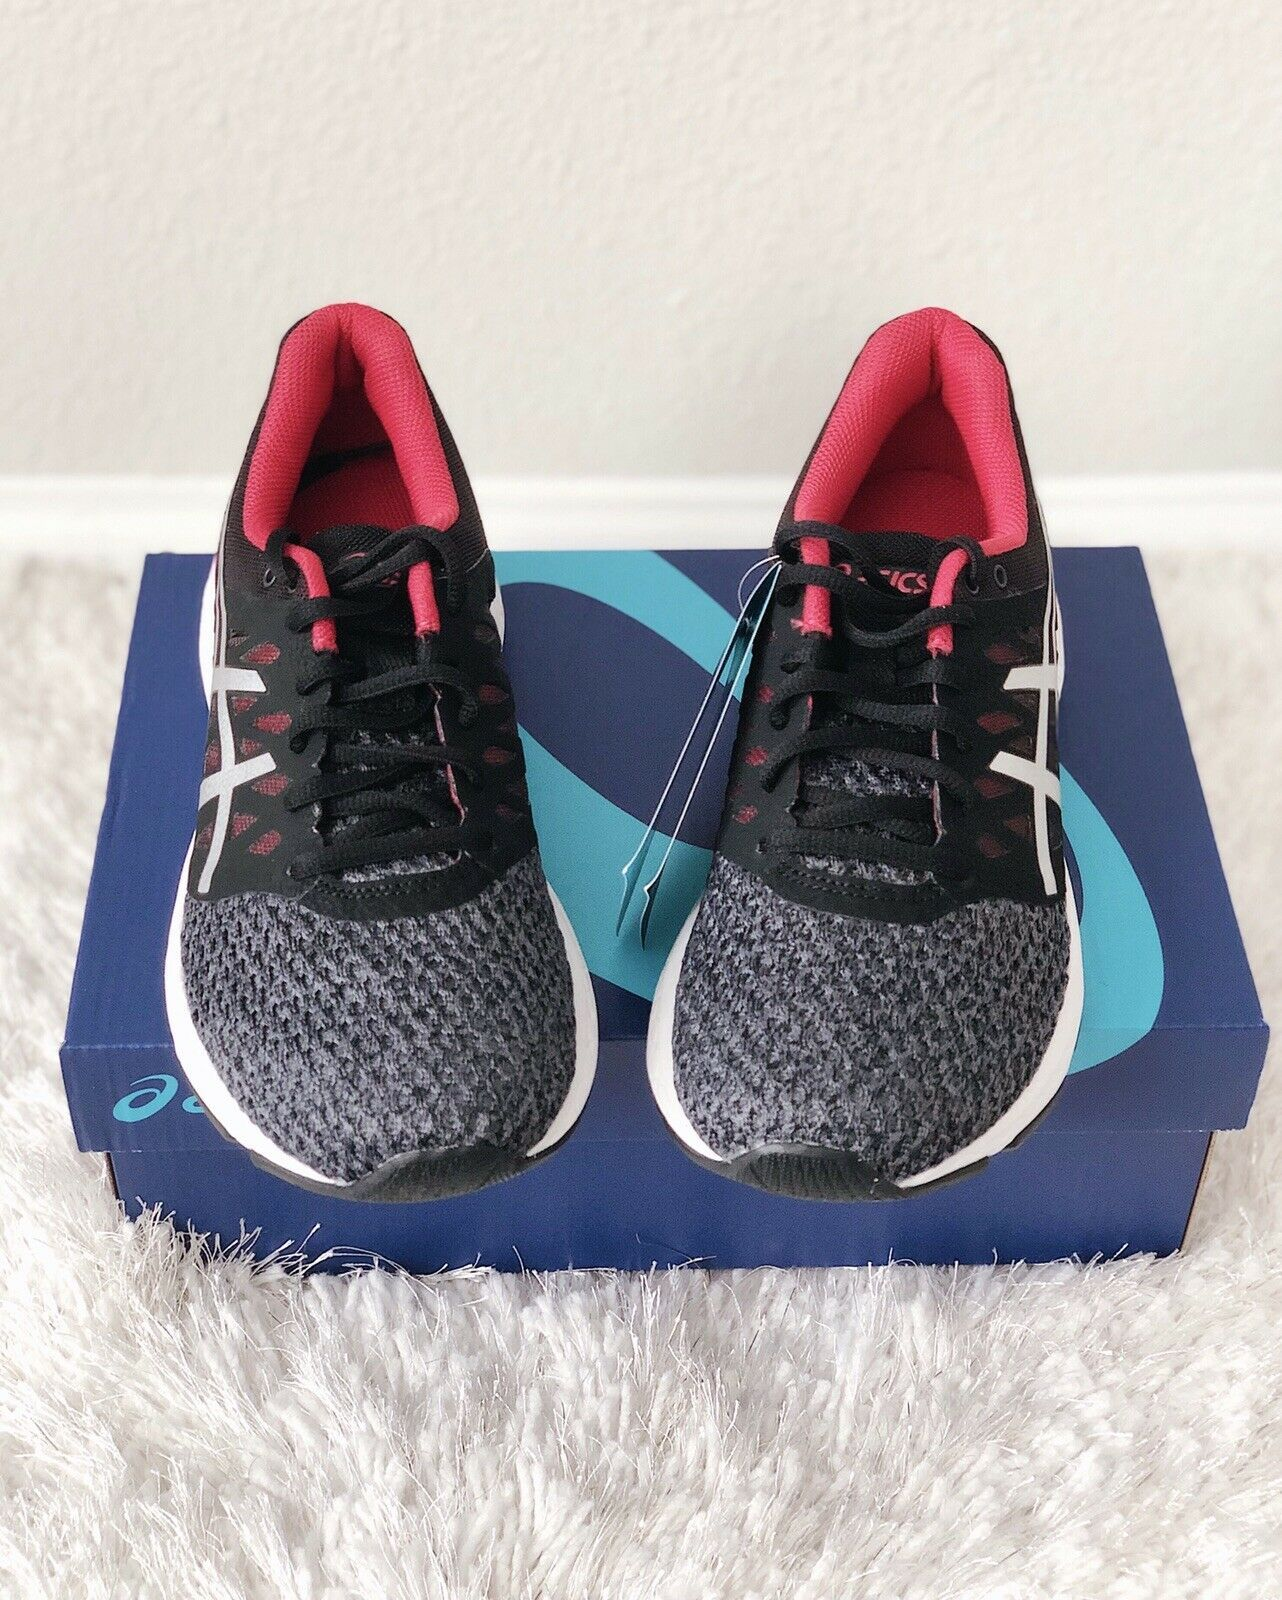 ✨New ASICS Gel Exalt 4 Running Sneakers Carbon Cosmo Pink Womens Size 7 $160 NIB